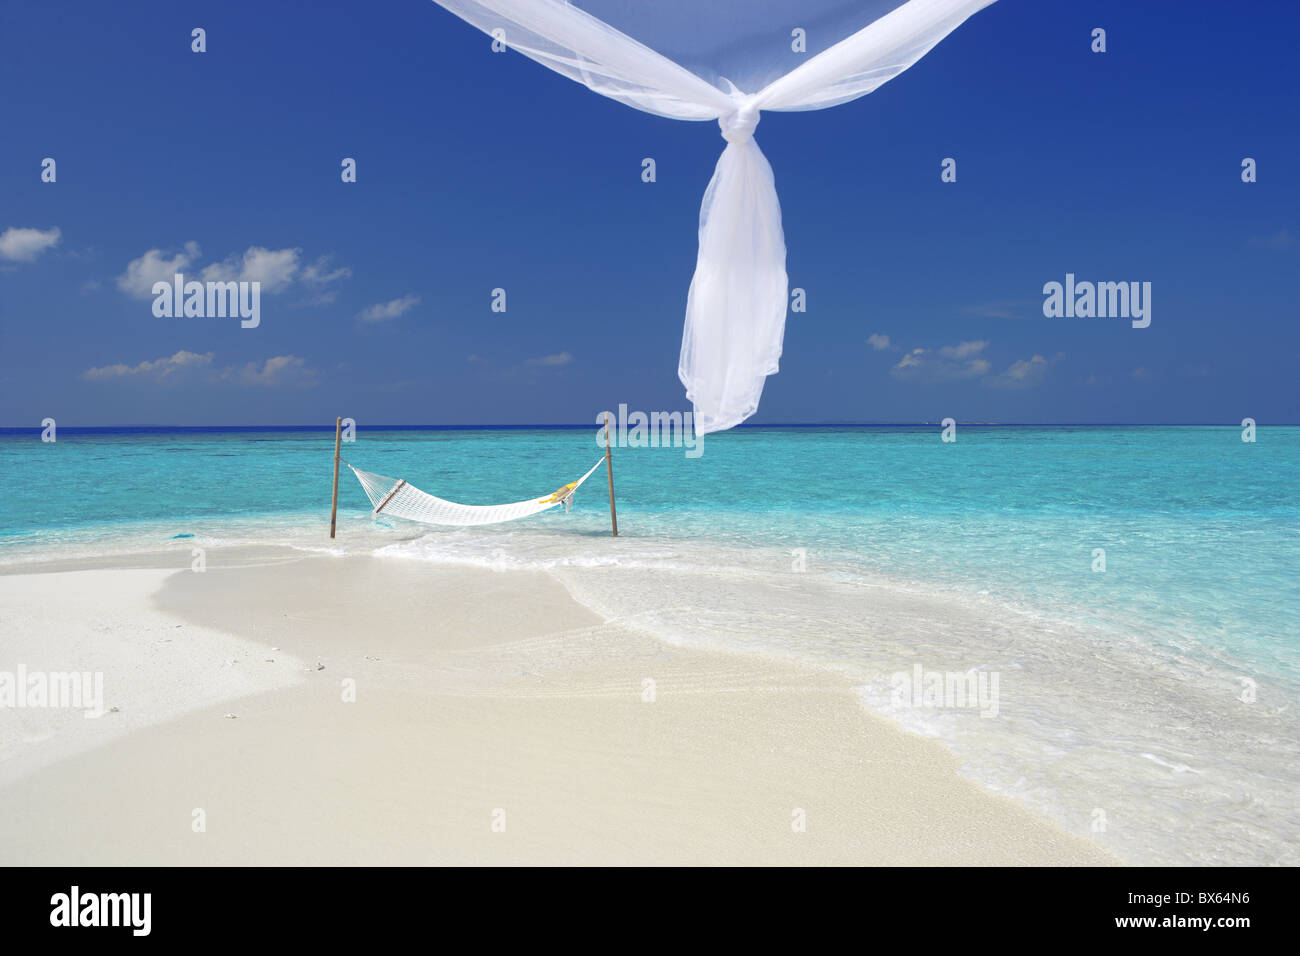 Hammock hanging in shallow clear water, The Maldives, Indian Ocean, Asia - Stock Image